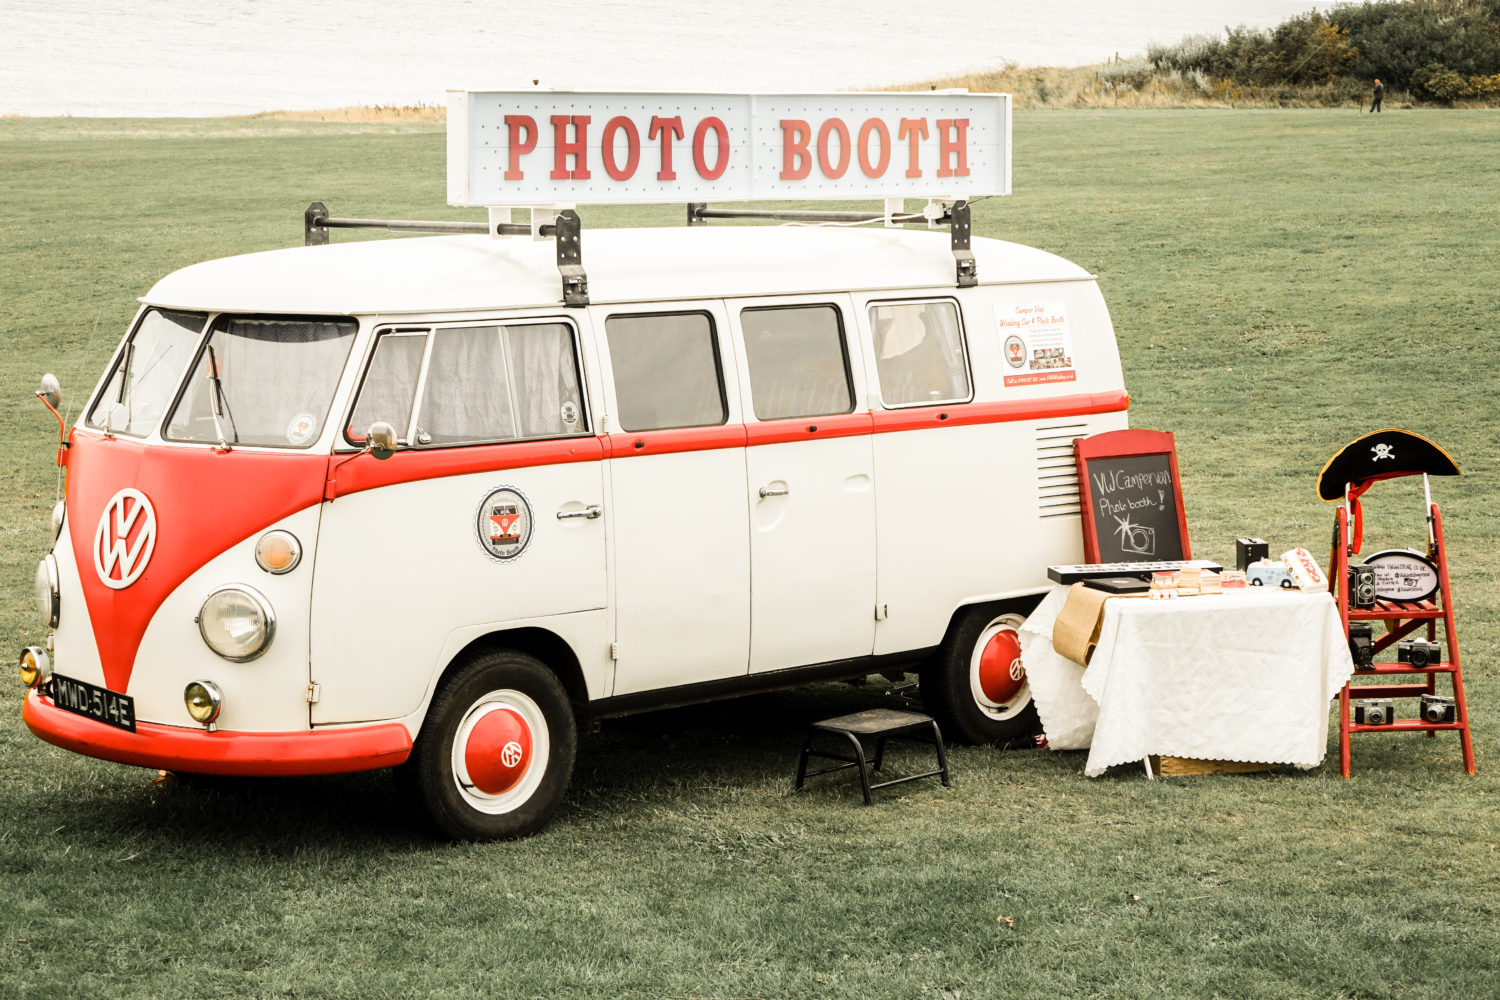 retro vw camper van photo booth outdoor wedding by the sea